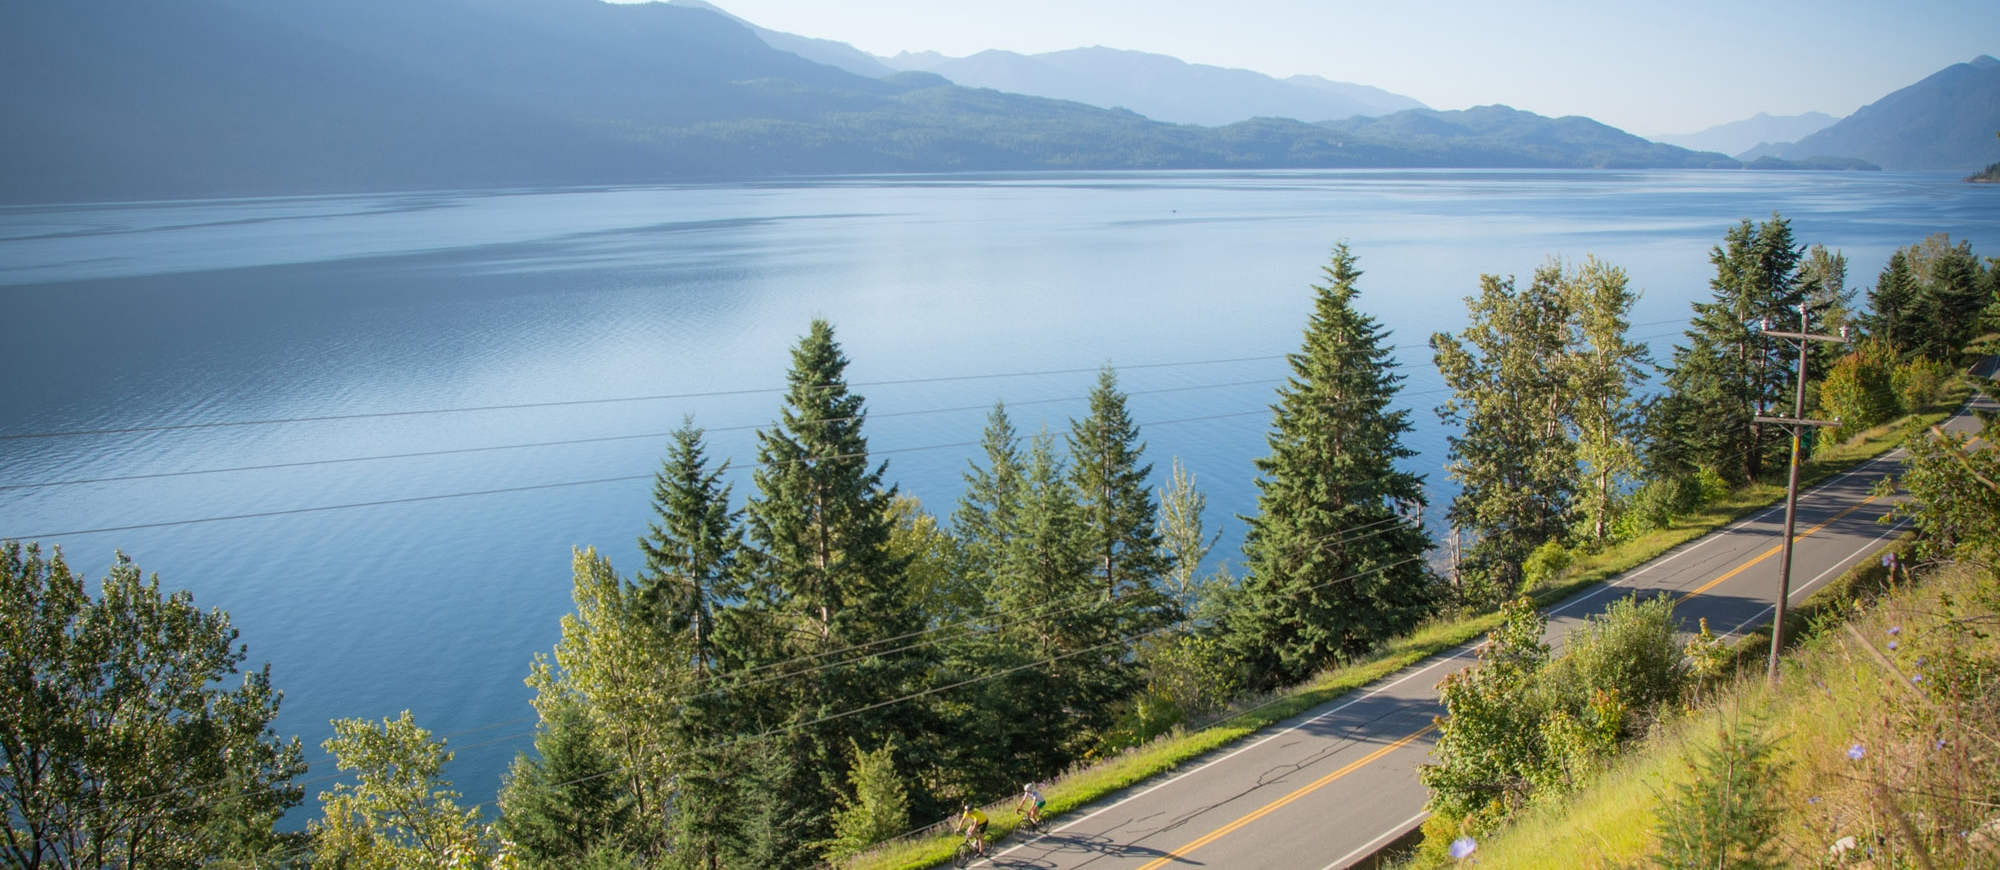 Two cyclists riding along the Highway near Kaslo, BC